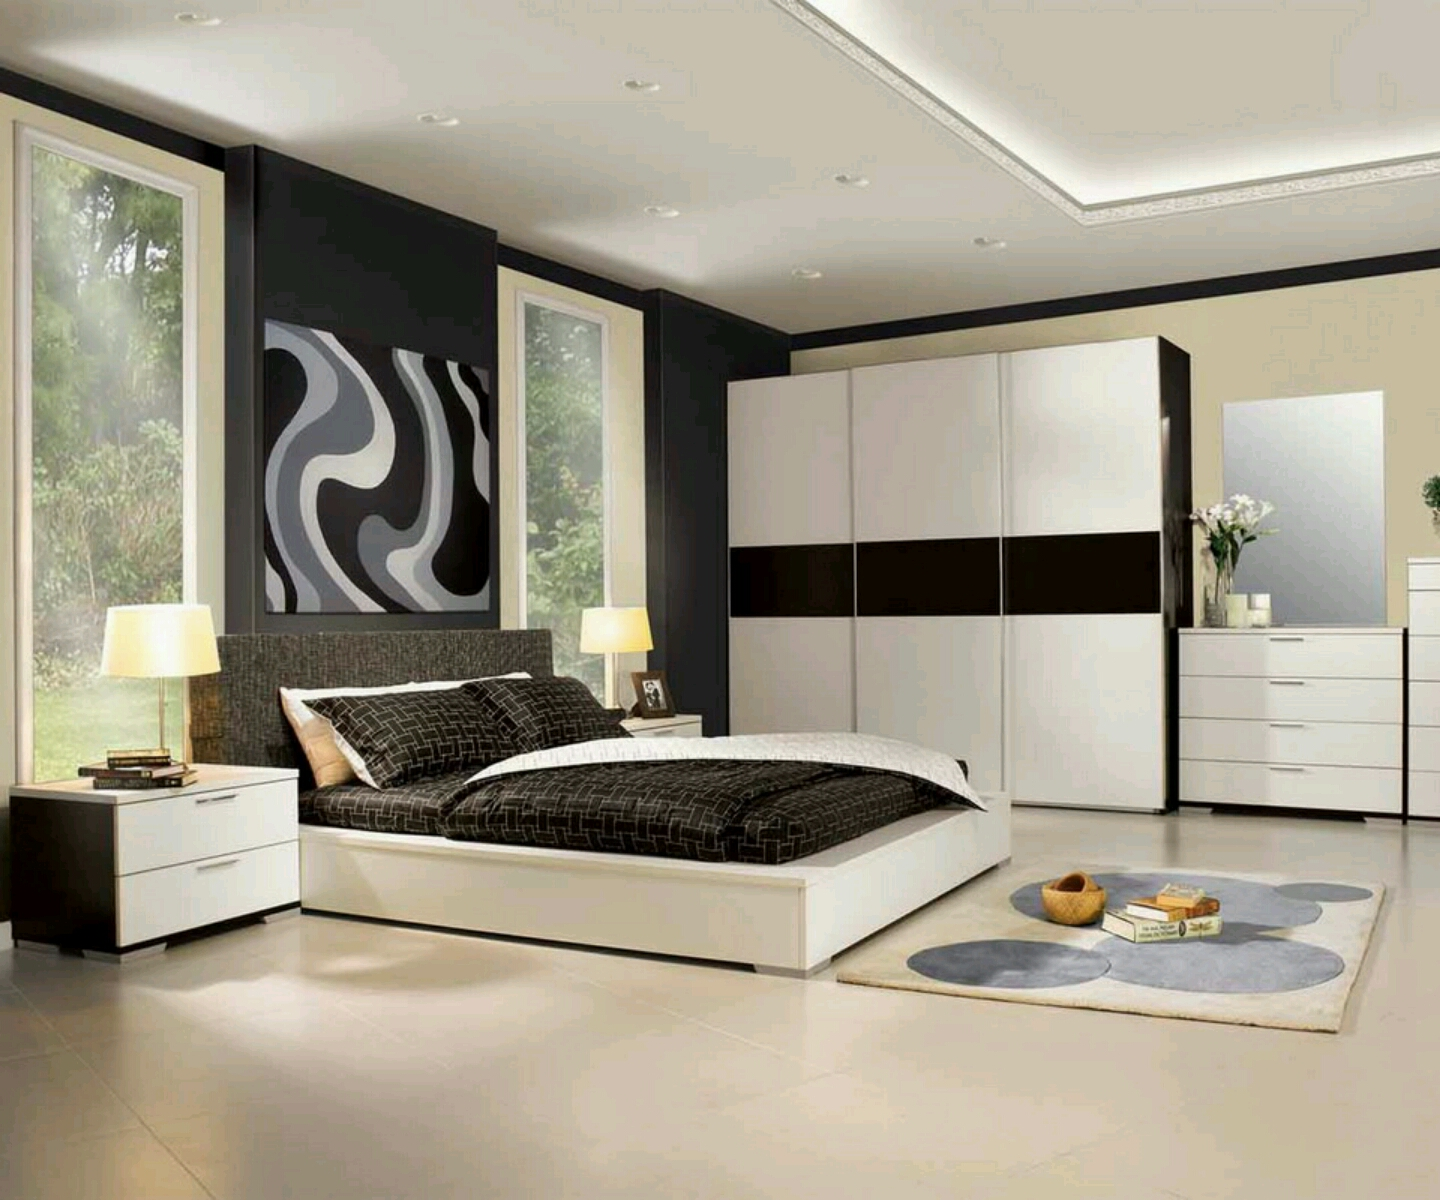 Bedroom Furniture Design Of Best Design Home December 2012